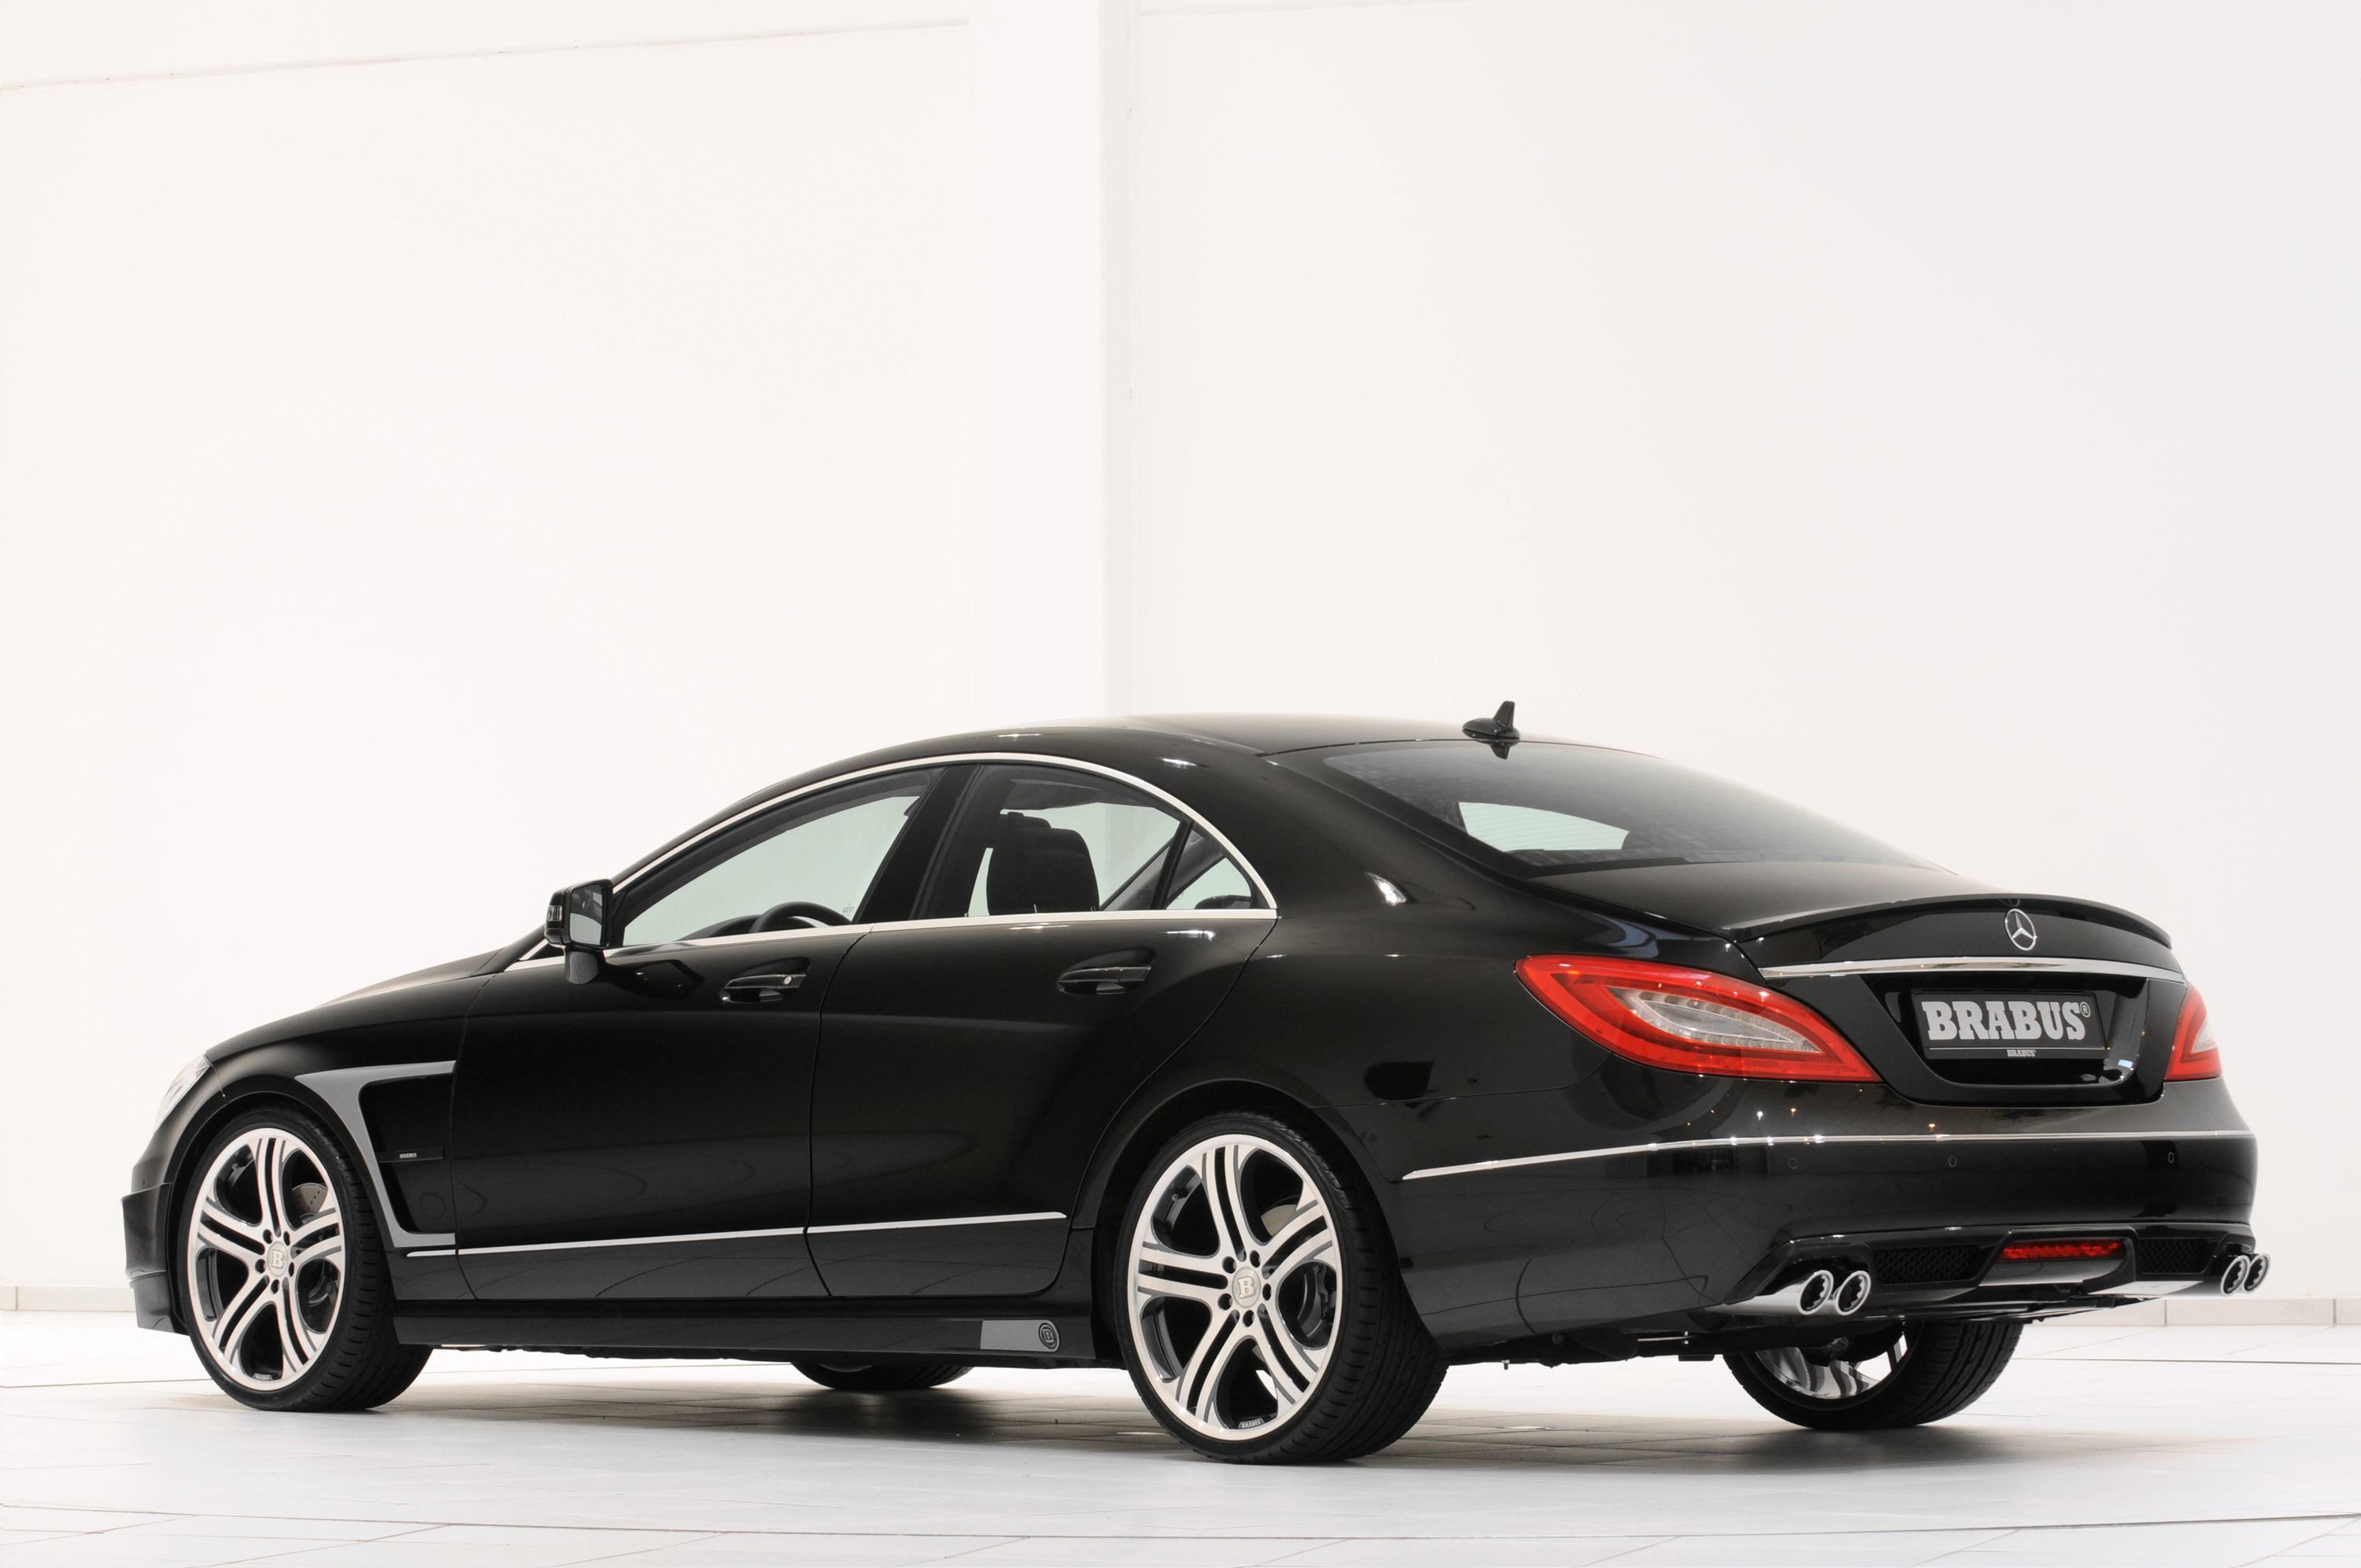 BRABUS 2012 Mercedes CLS Coupe, 4 of 19